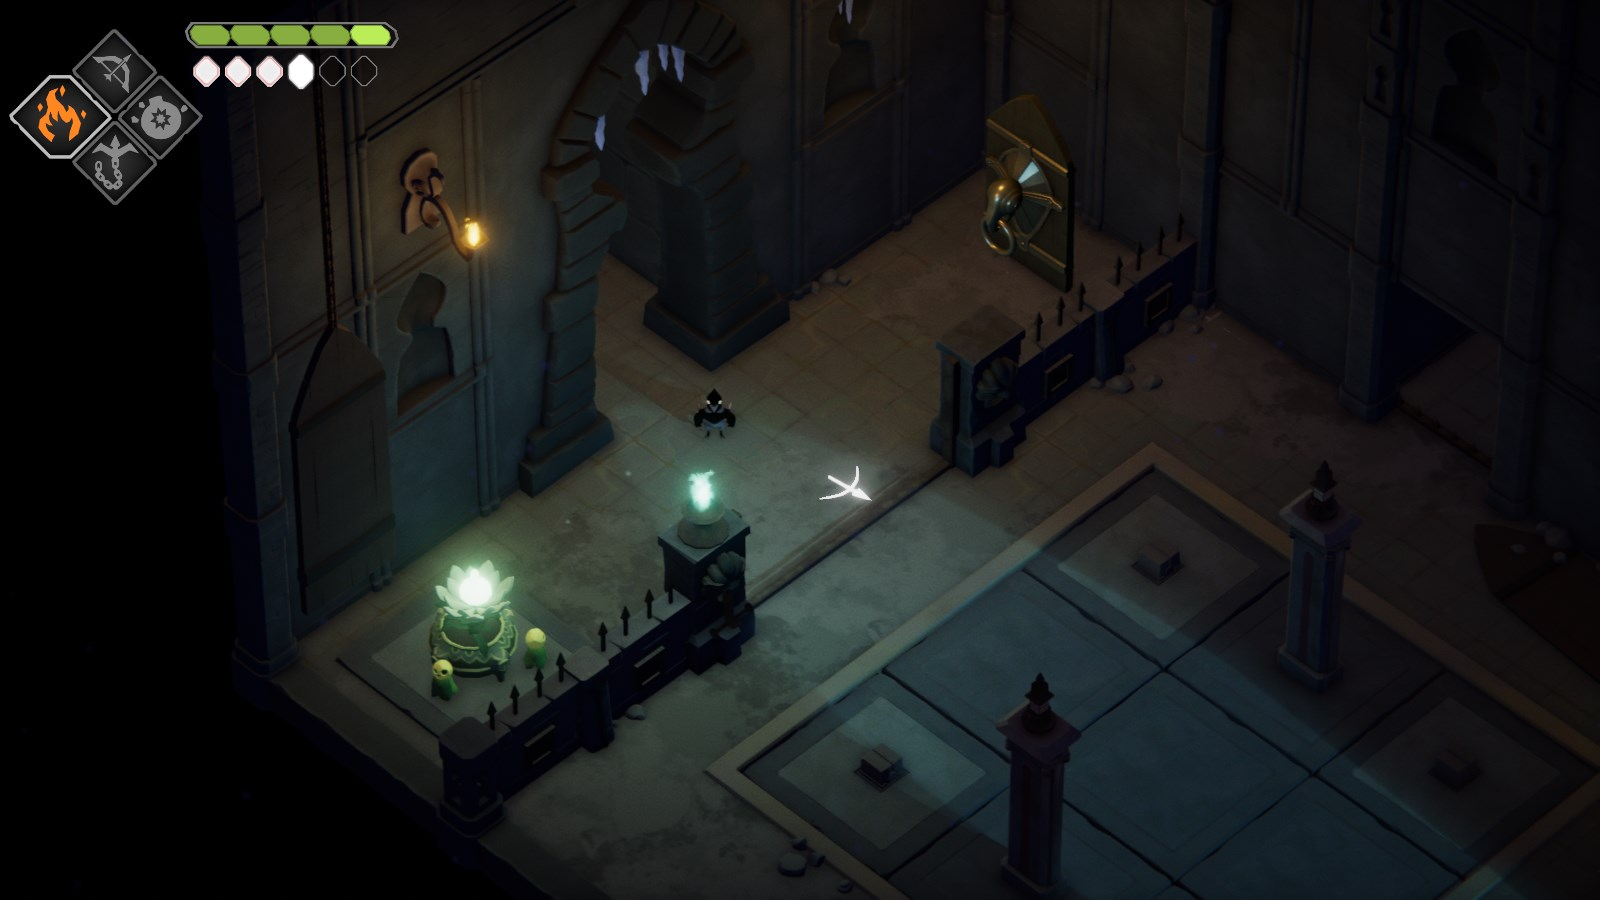 A small crow stands in the entrance to a dimly lit castle